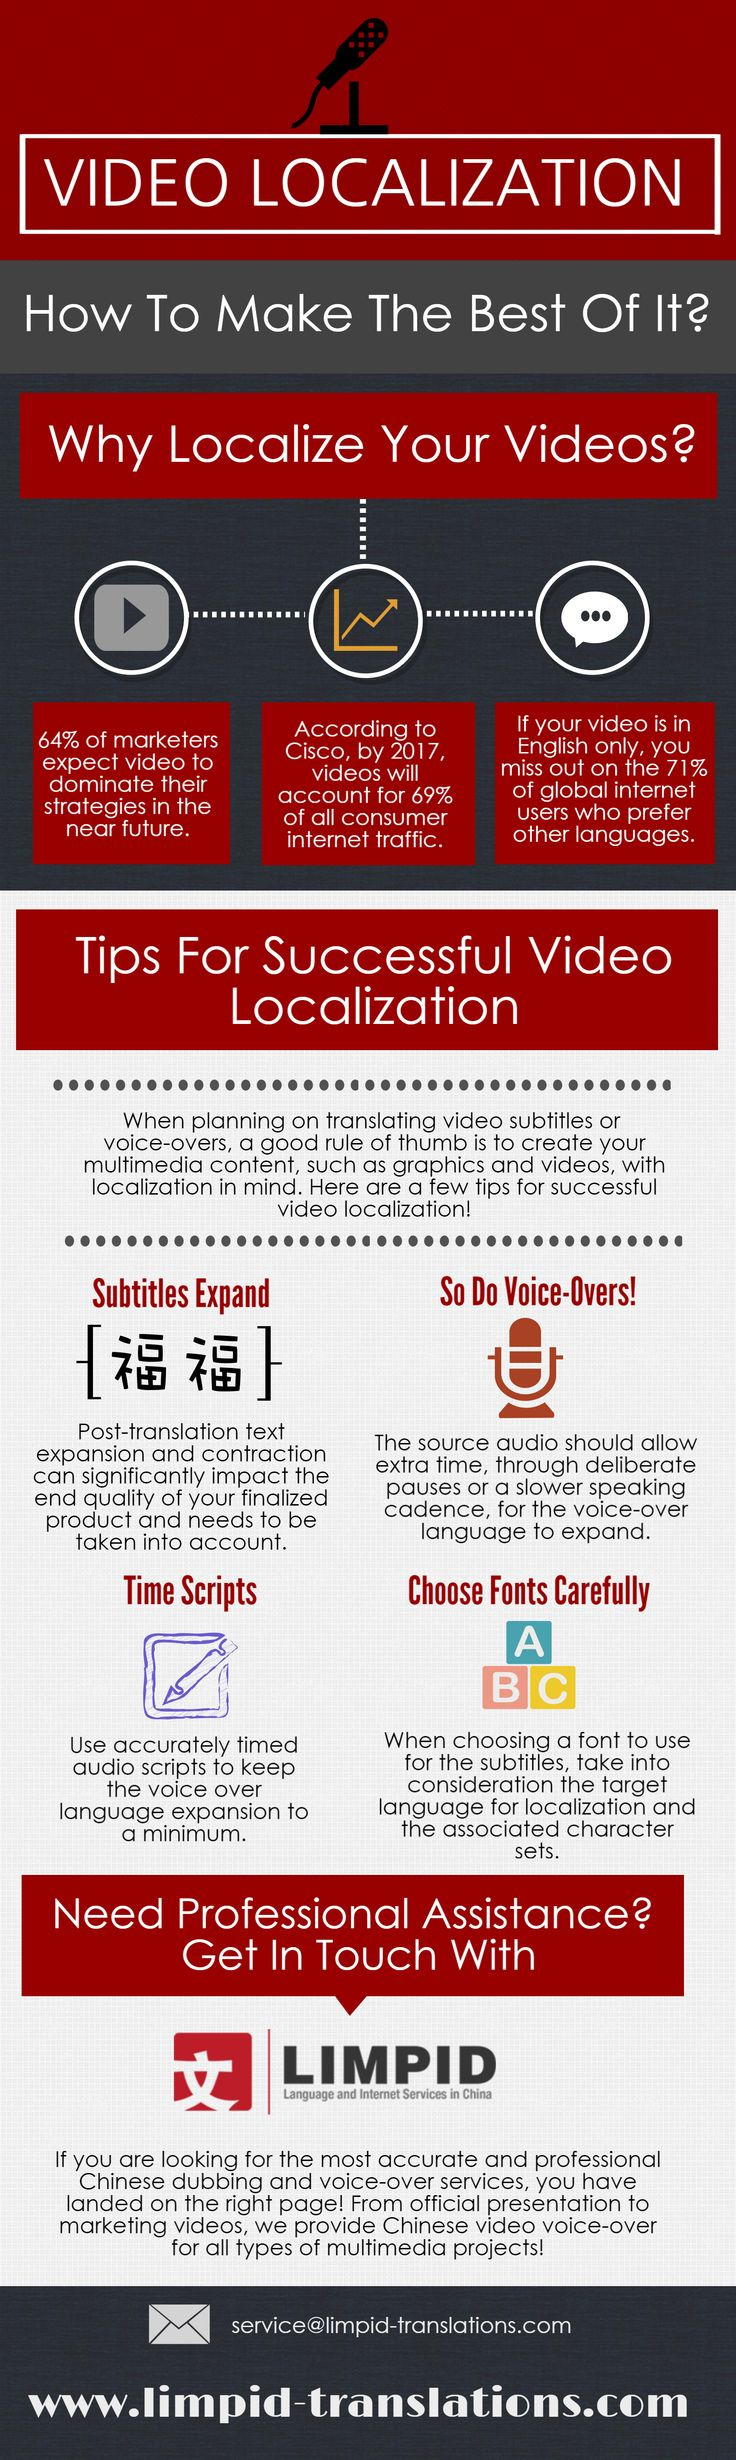 When planning on translating video subtitles or voice-overs, a good rule of thumb is to create your multimedia content, such as graphics and videos, with localization in mind. Here are a few tips for successful video localization!  http://limpid-translations.com/knowledge-base/blog/tips-successful-clocalization/